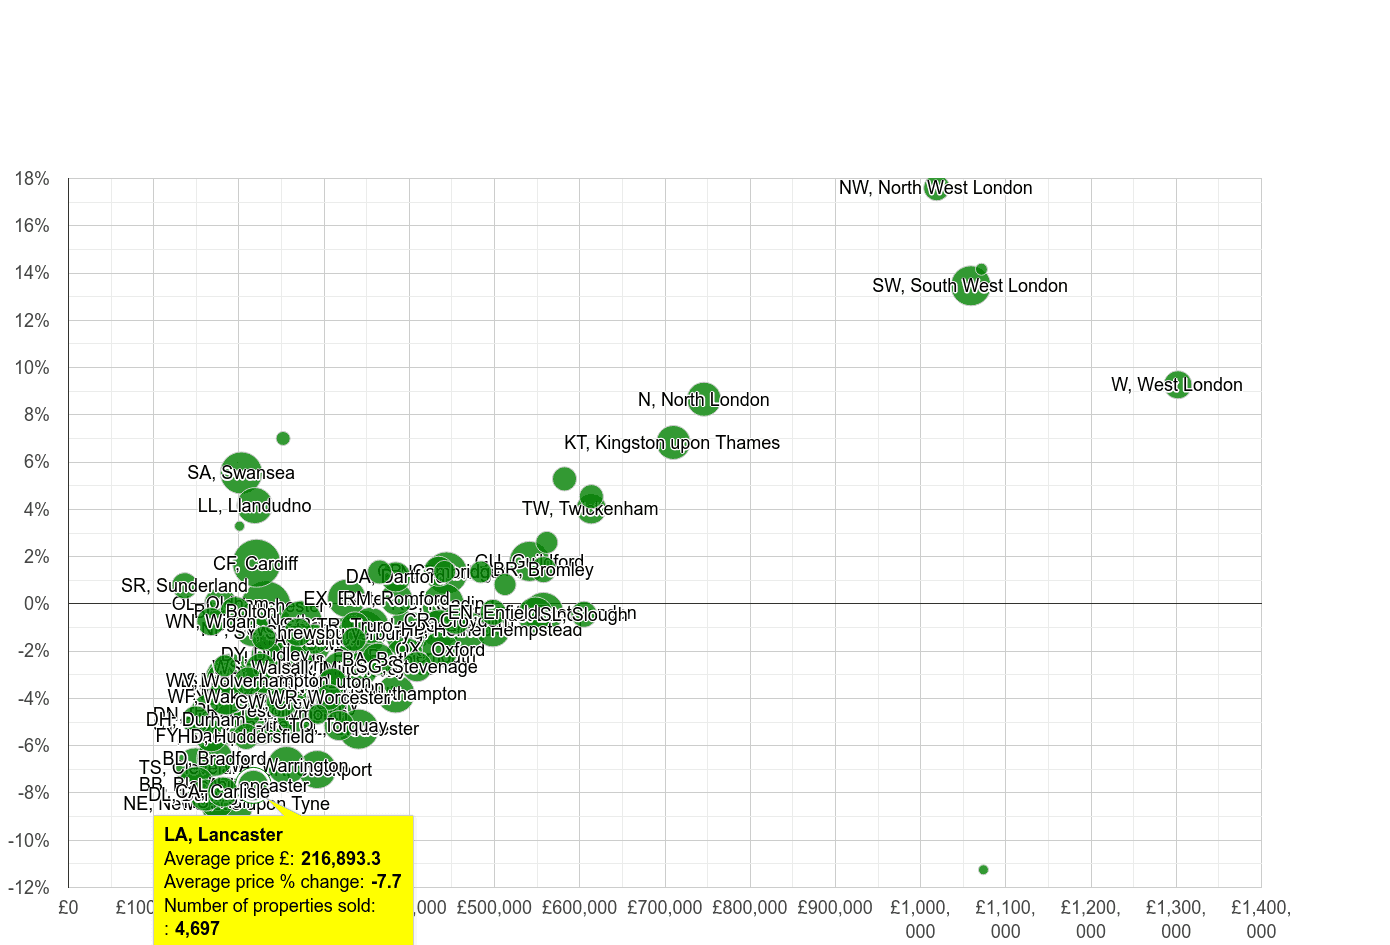 Lancaster house prices compared to other areas